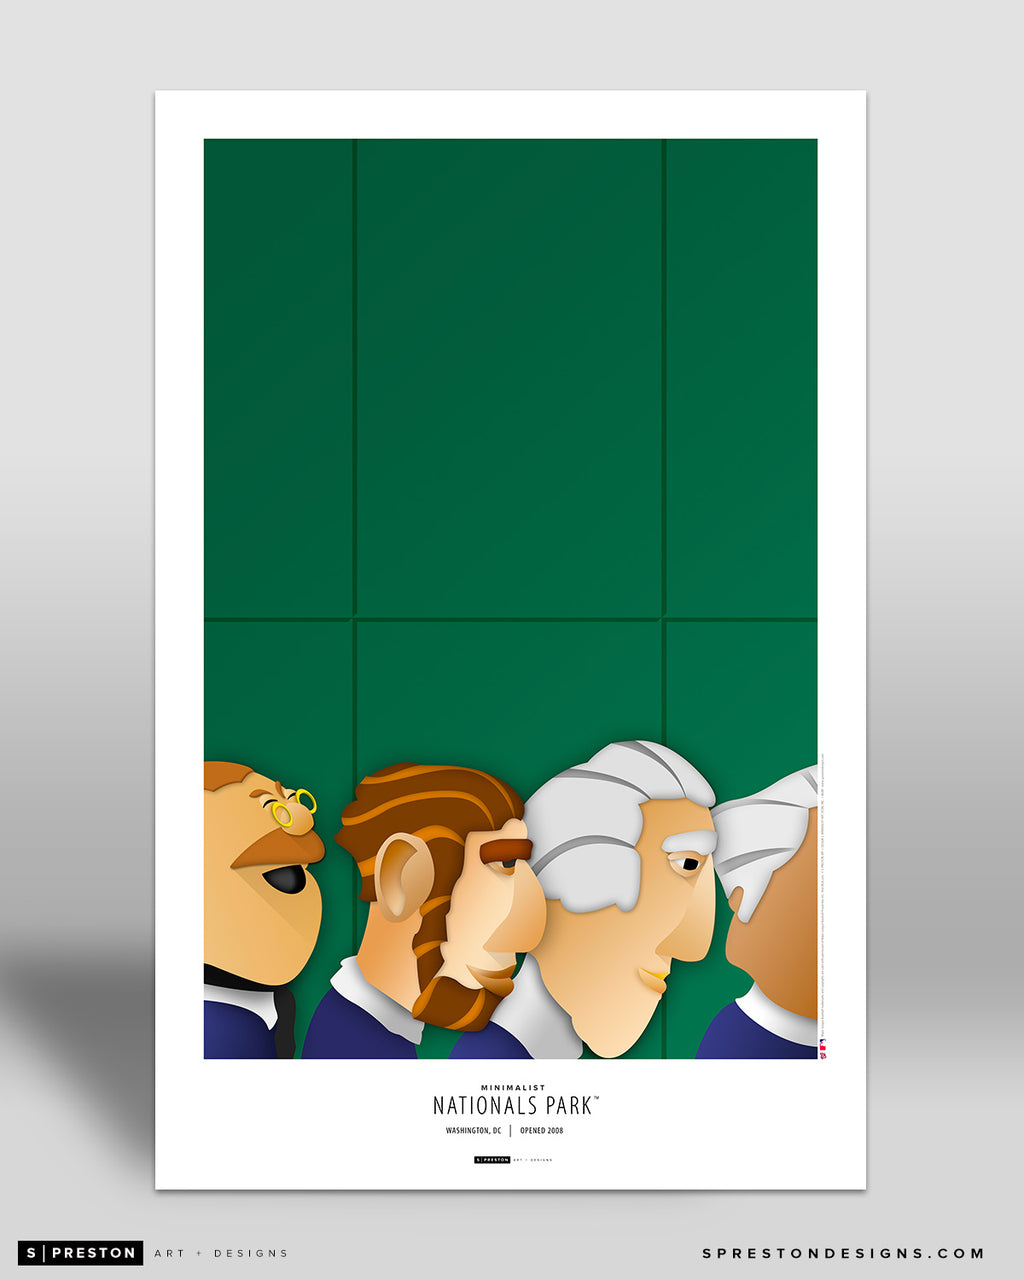 Minimalist Nationals Park Poster Print Washington Nationals - S Preston